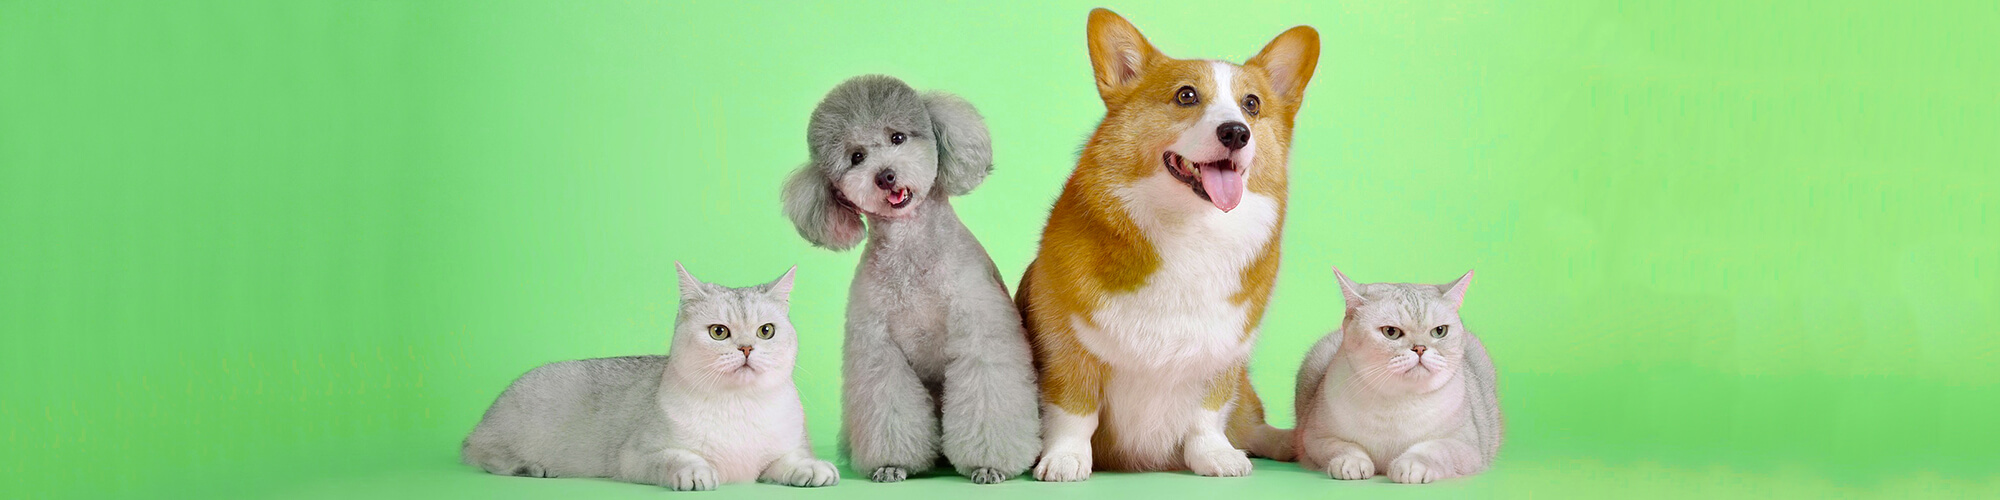 poodle corgi and two cats against a bright green background